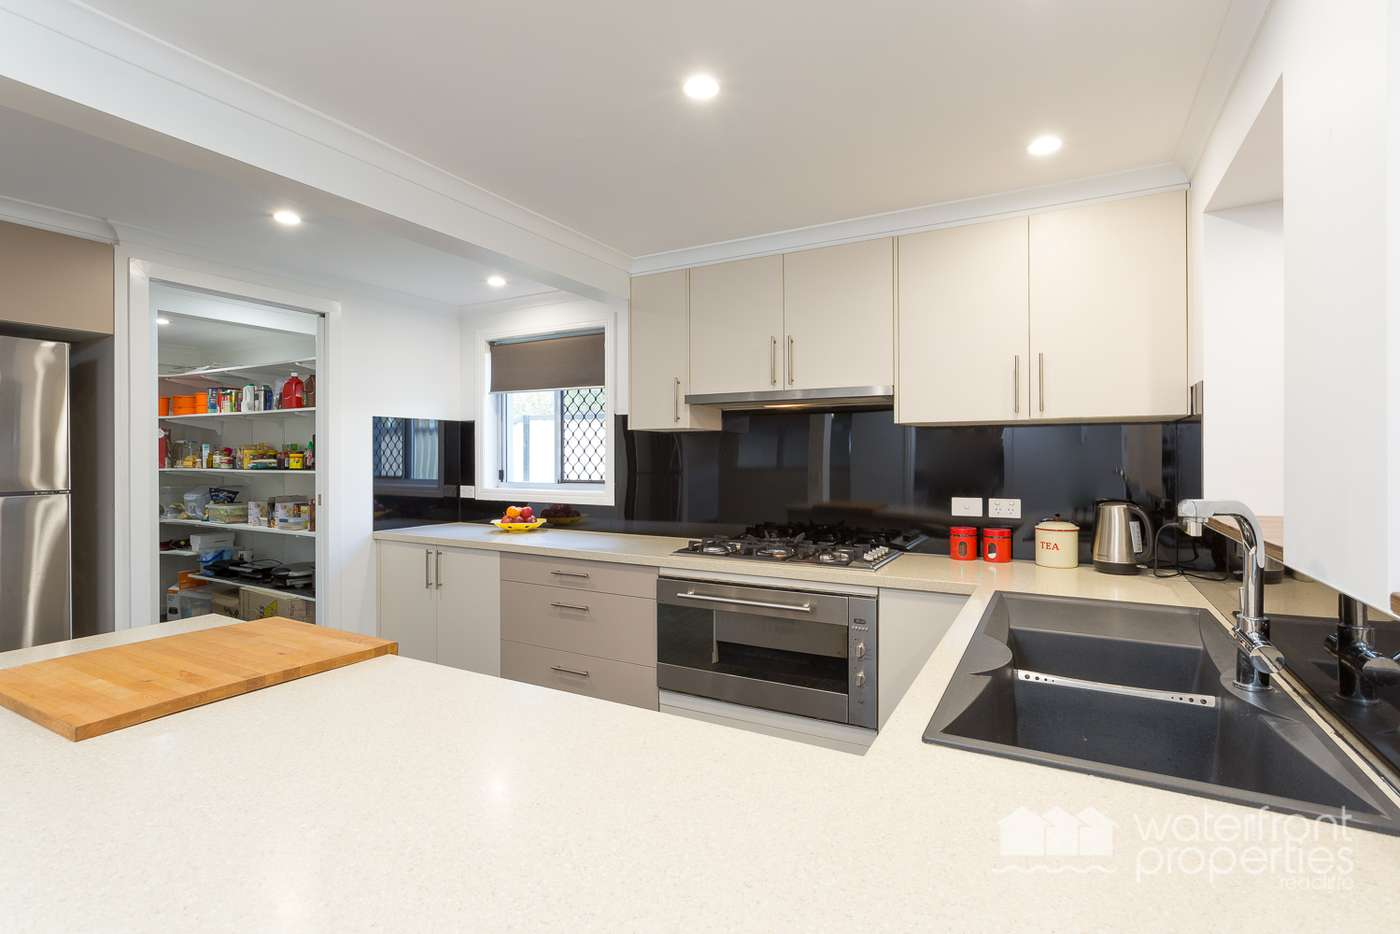 Seventh view of Homely house listing, 27 Stratford Street, Kippa-ring QLD 4021